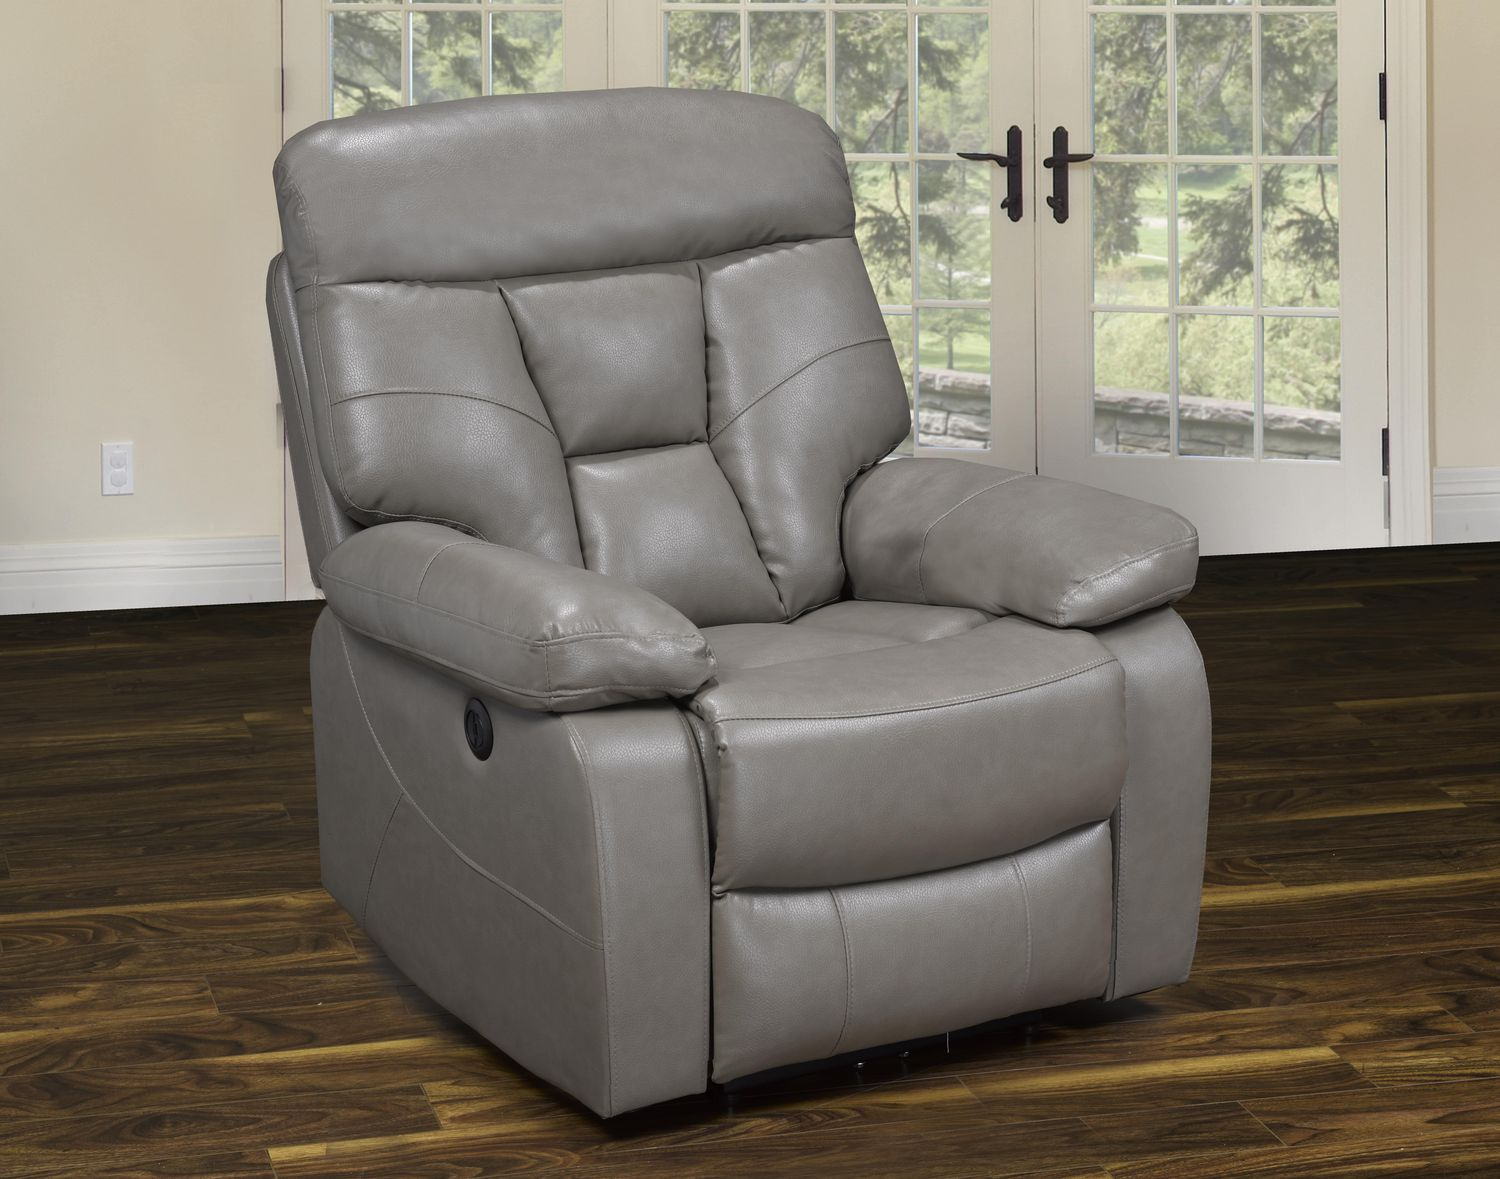 K Living Stanley Leatherair Power Recliner Chair In Sand Color Walmart Canada